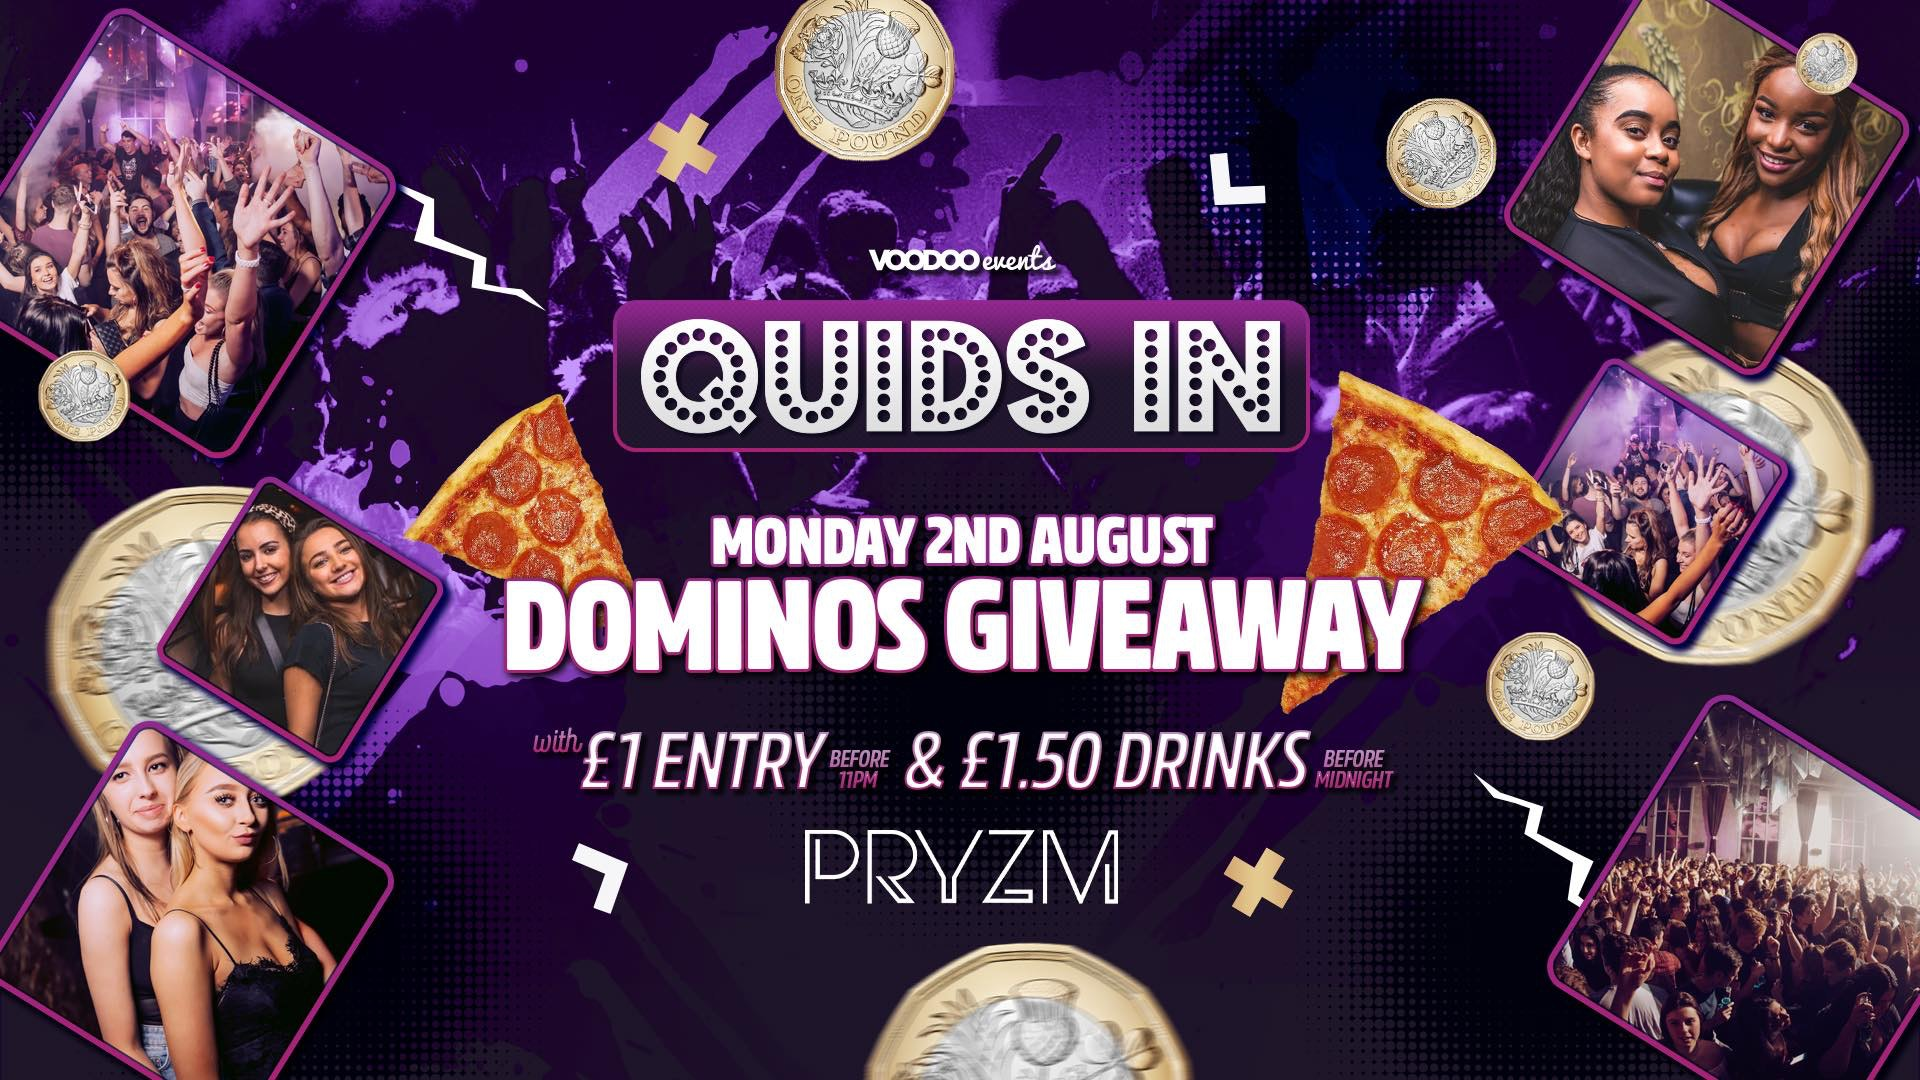 Quids In Mondays at PRYZM – 2nd August DOMINOS GIVEAWAY!